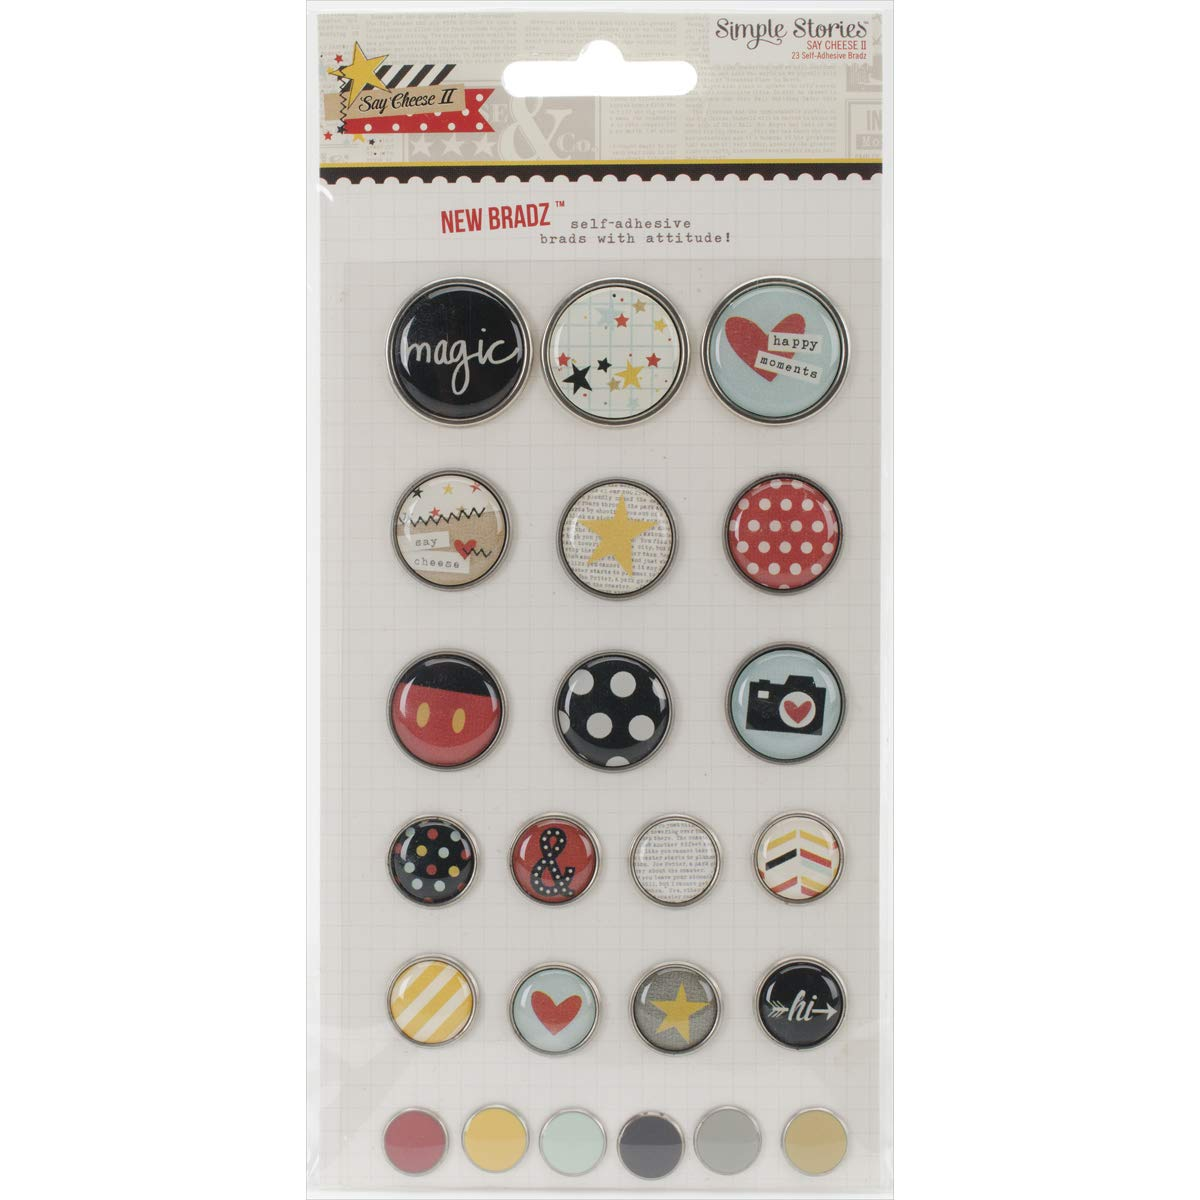 Simple Stories Say Cheese II Collection Decorative Brads (12 Pack)